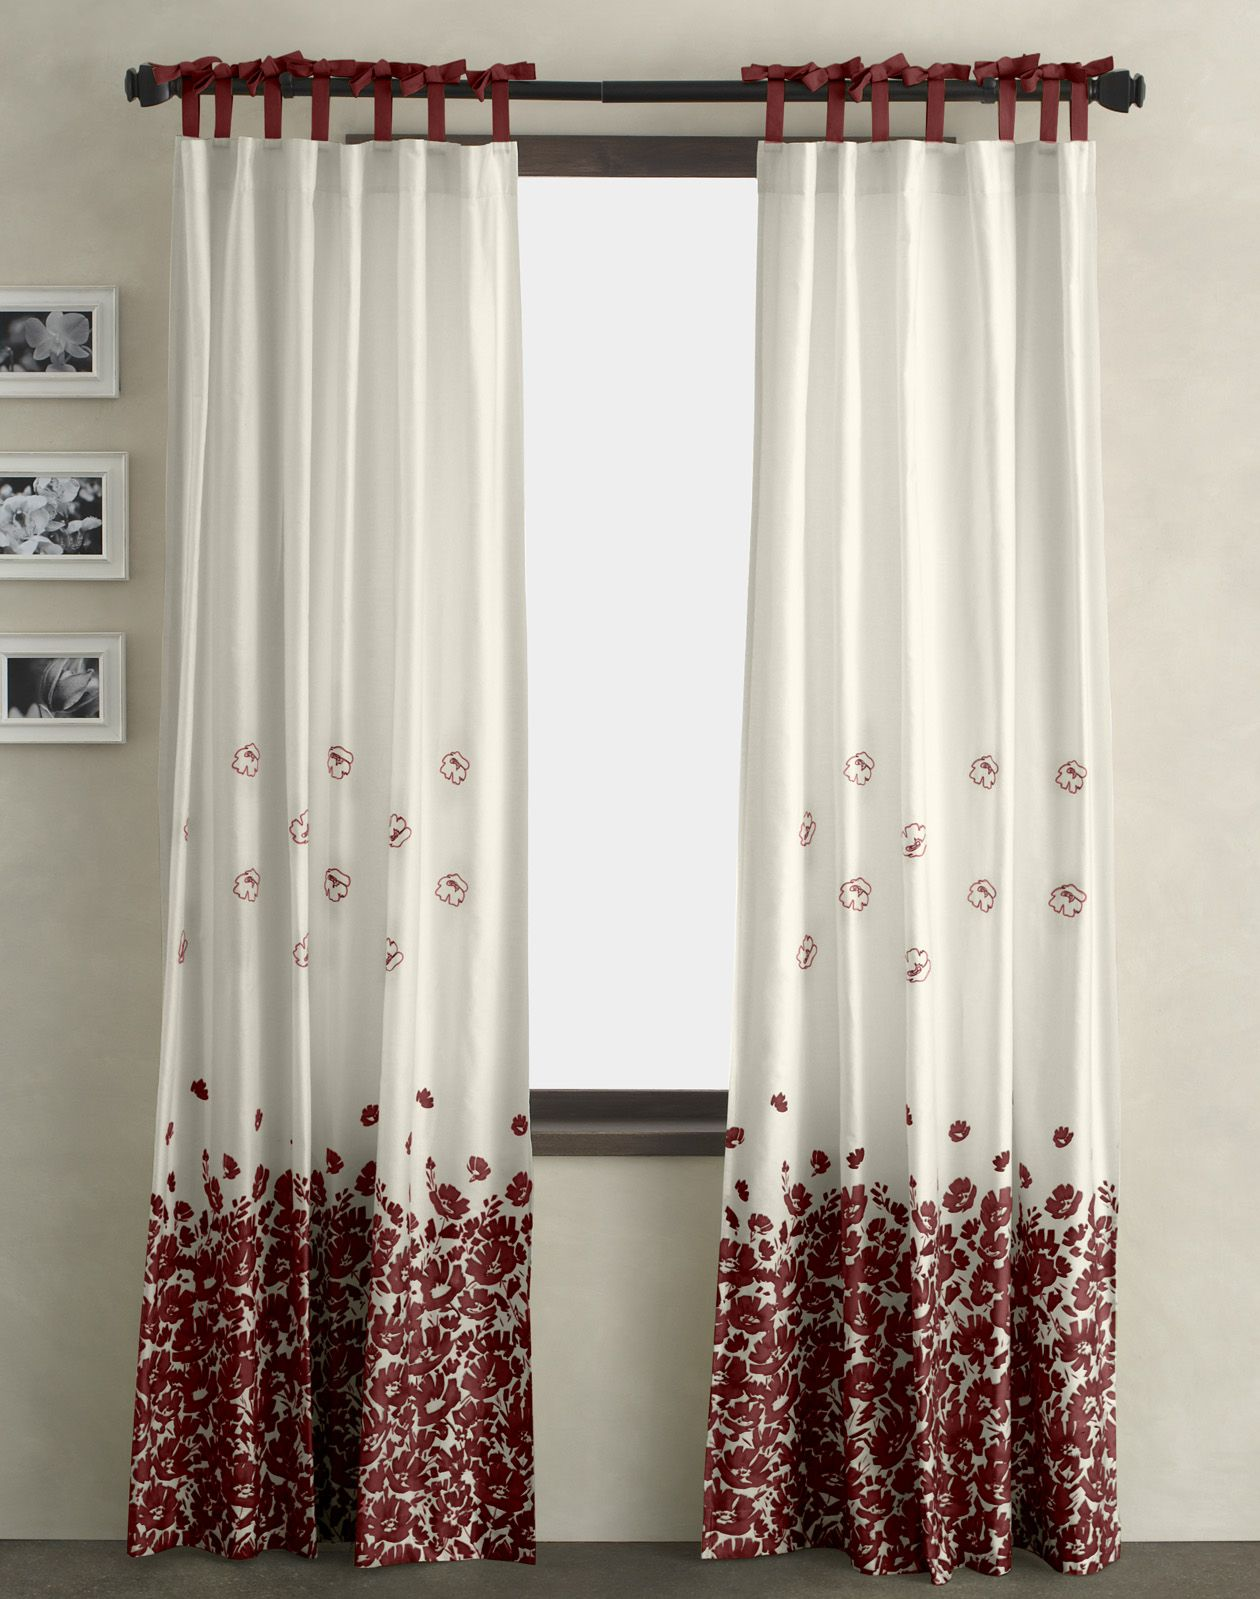 Wildflowers Pictures For Bedroom To Buy Discount Curtains